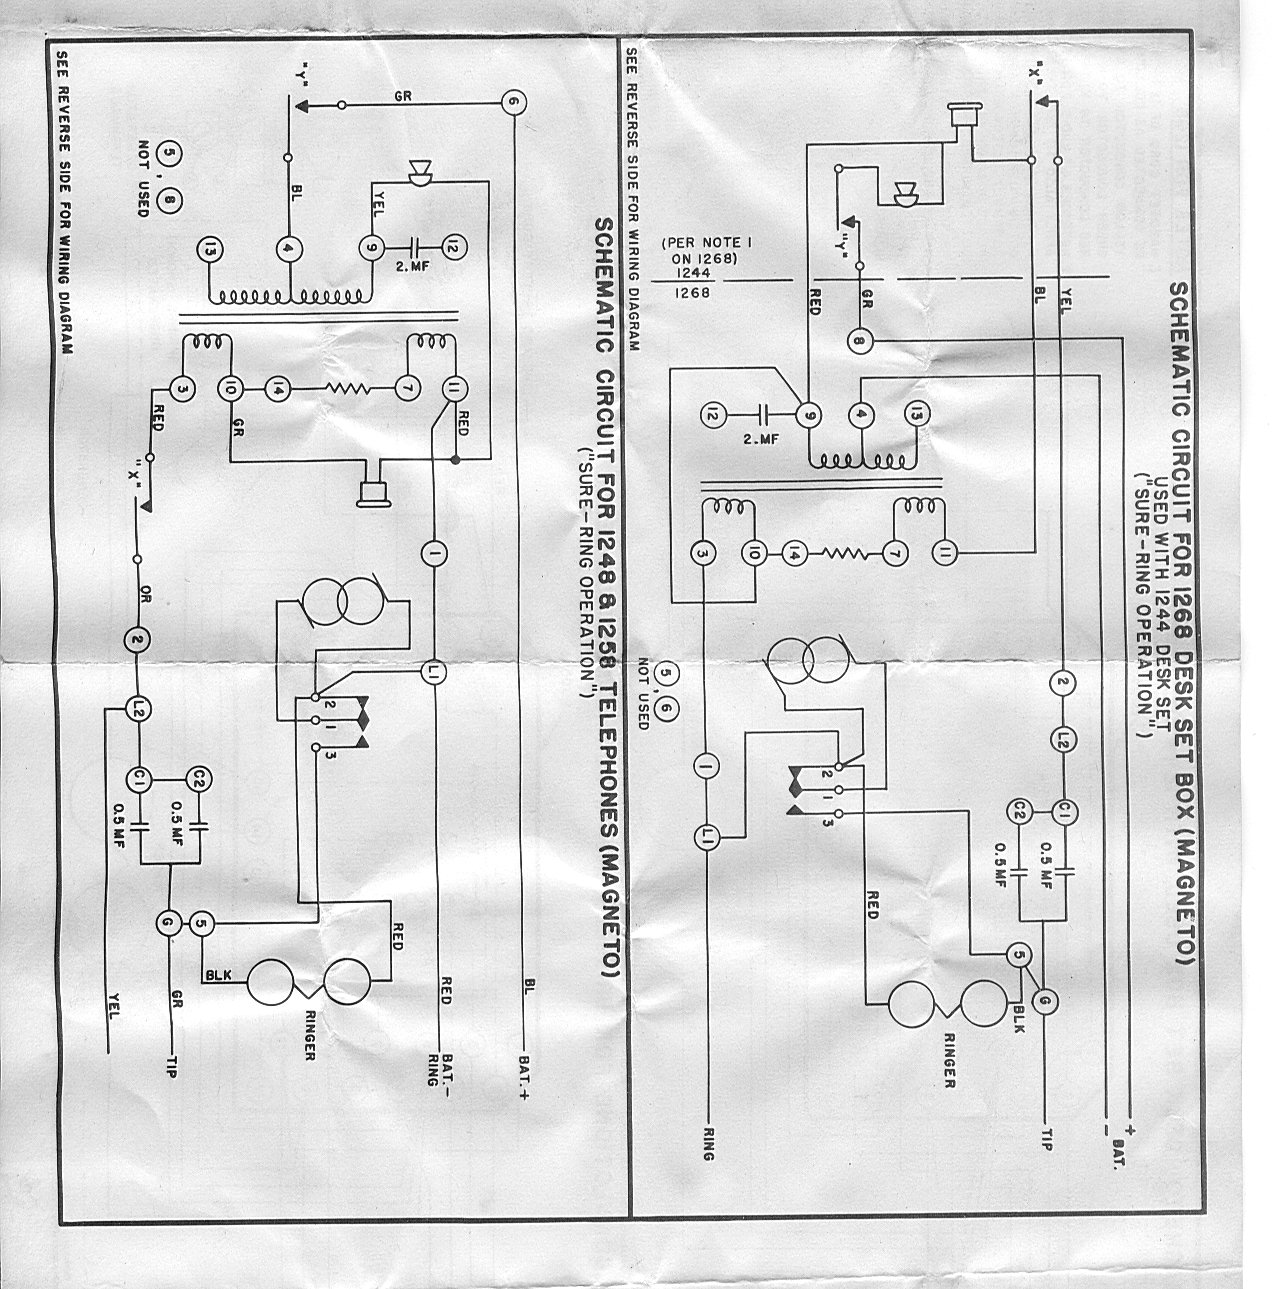 magnetosets2 telephone technical references magneto phone wiring diagram at crackthecode.co